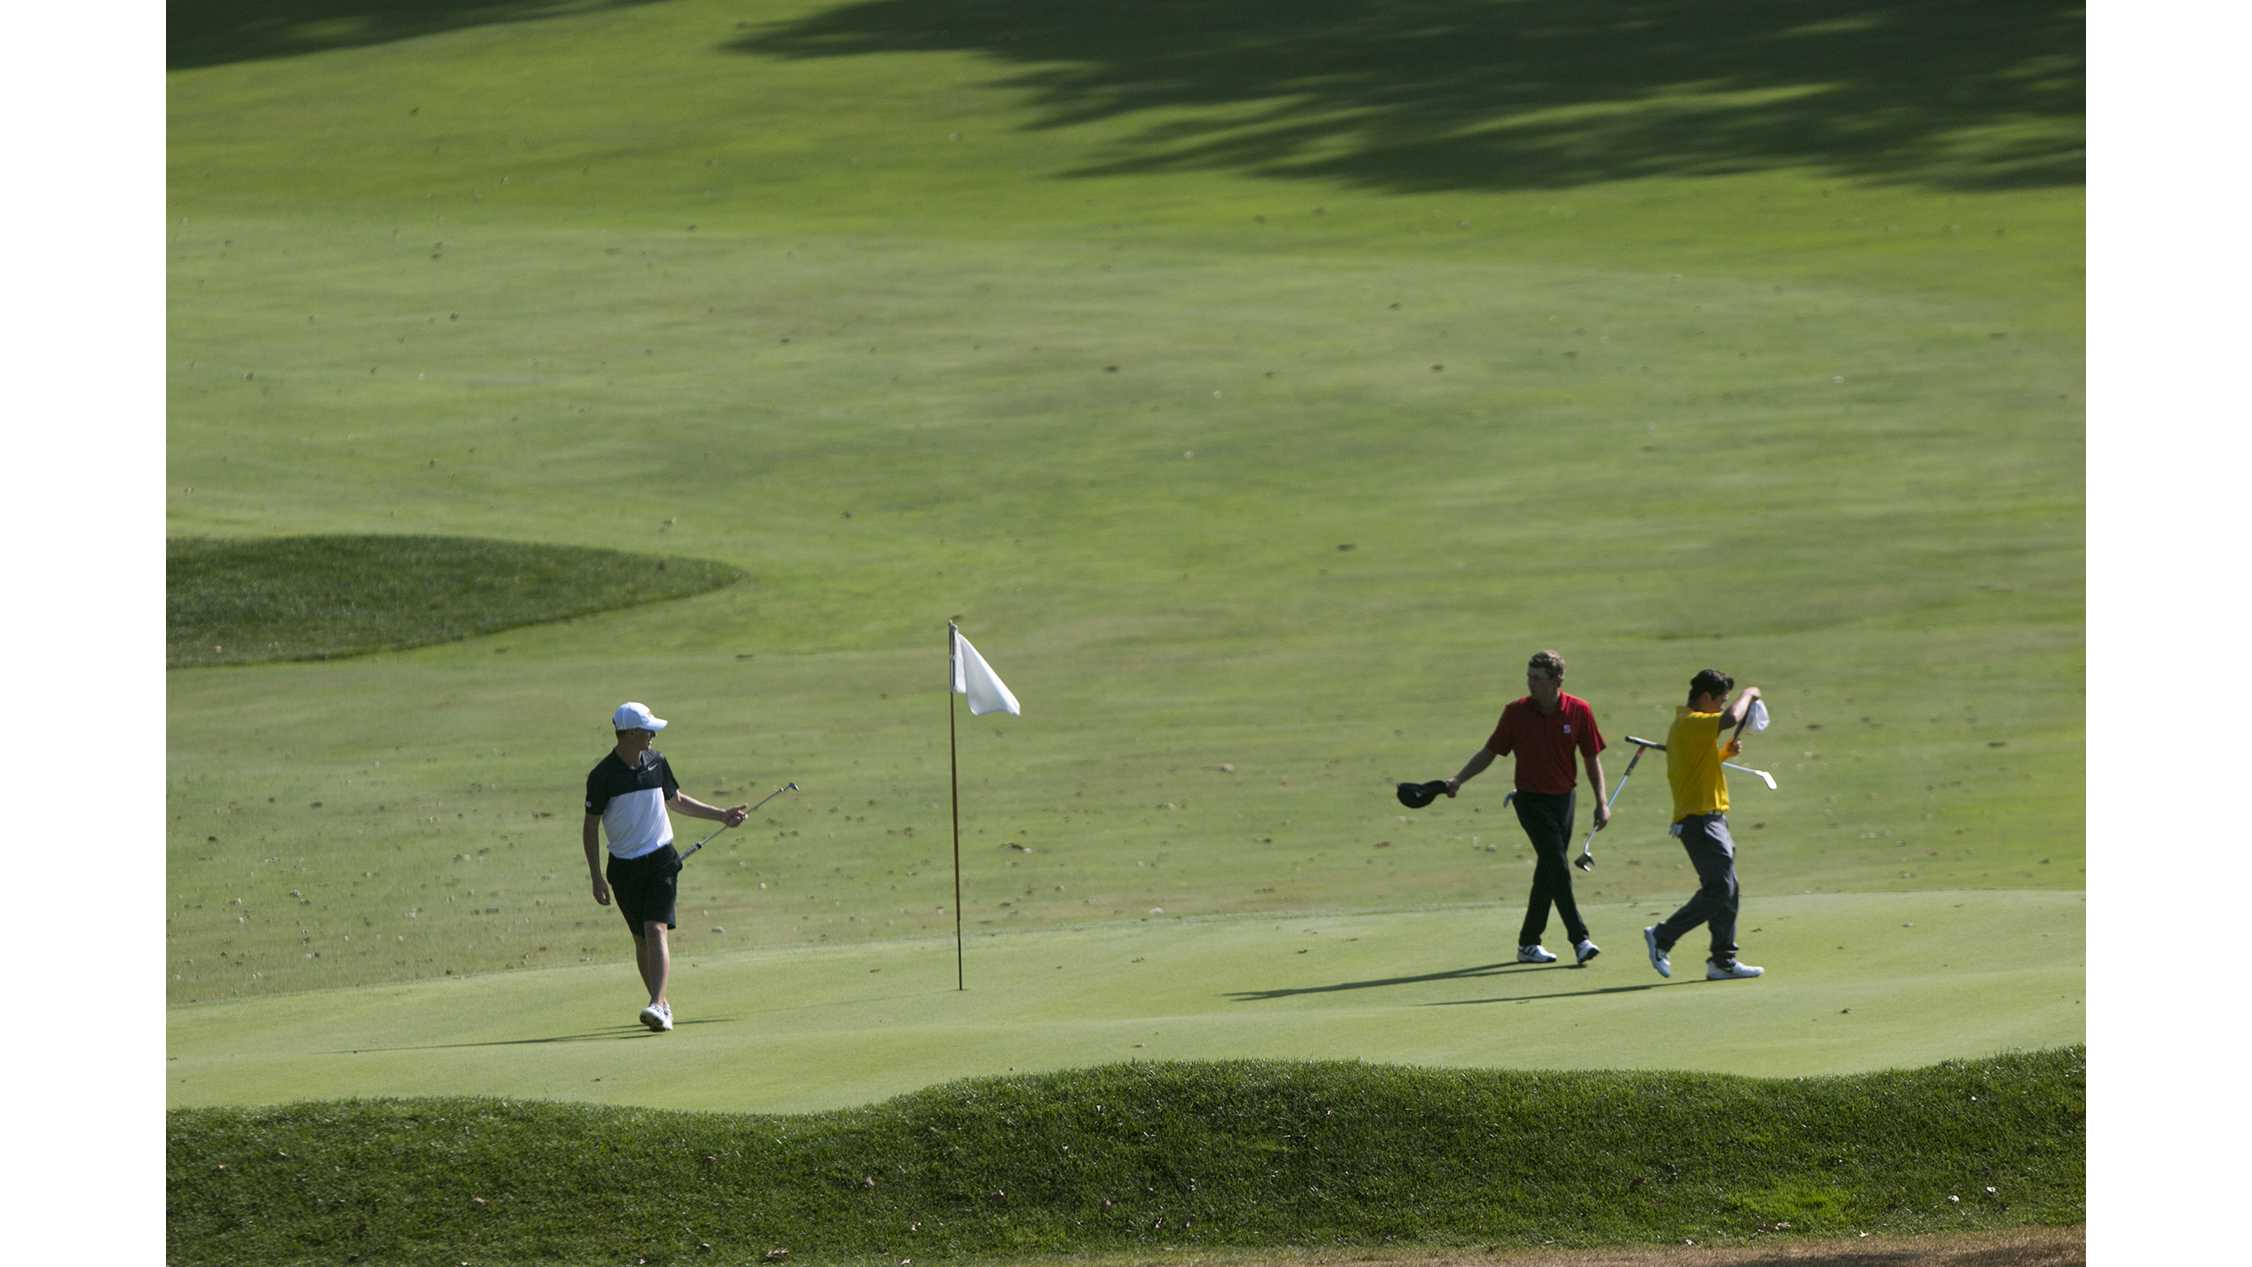 Iowa men's golf takes eighth in Texas tourney with top teams